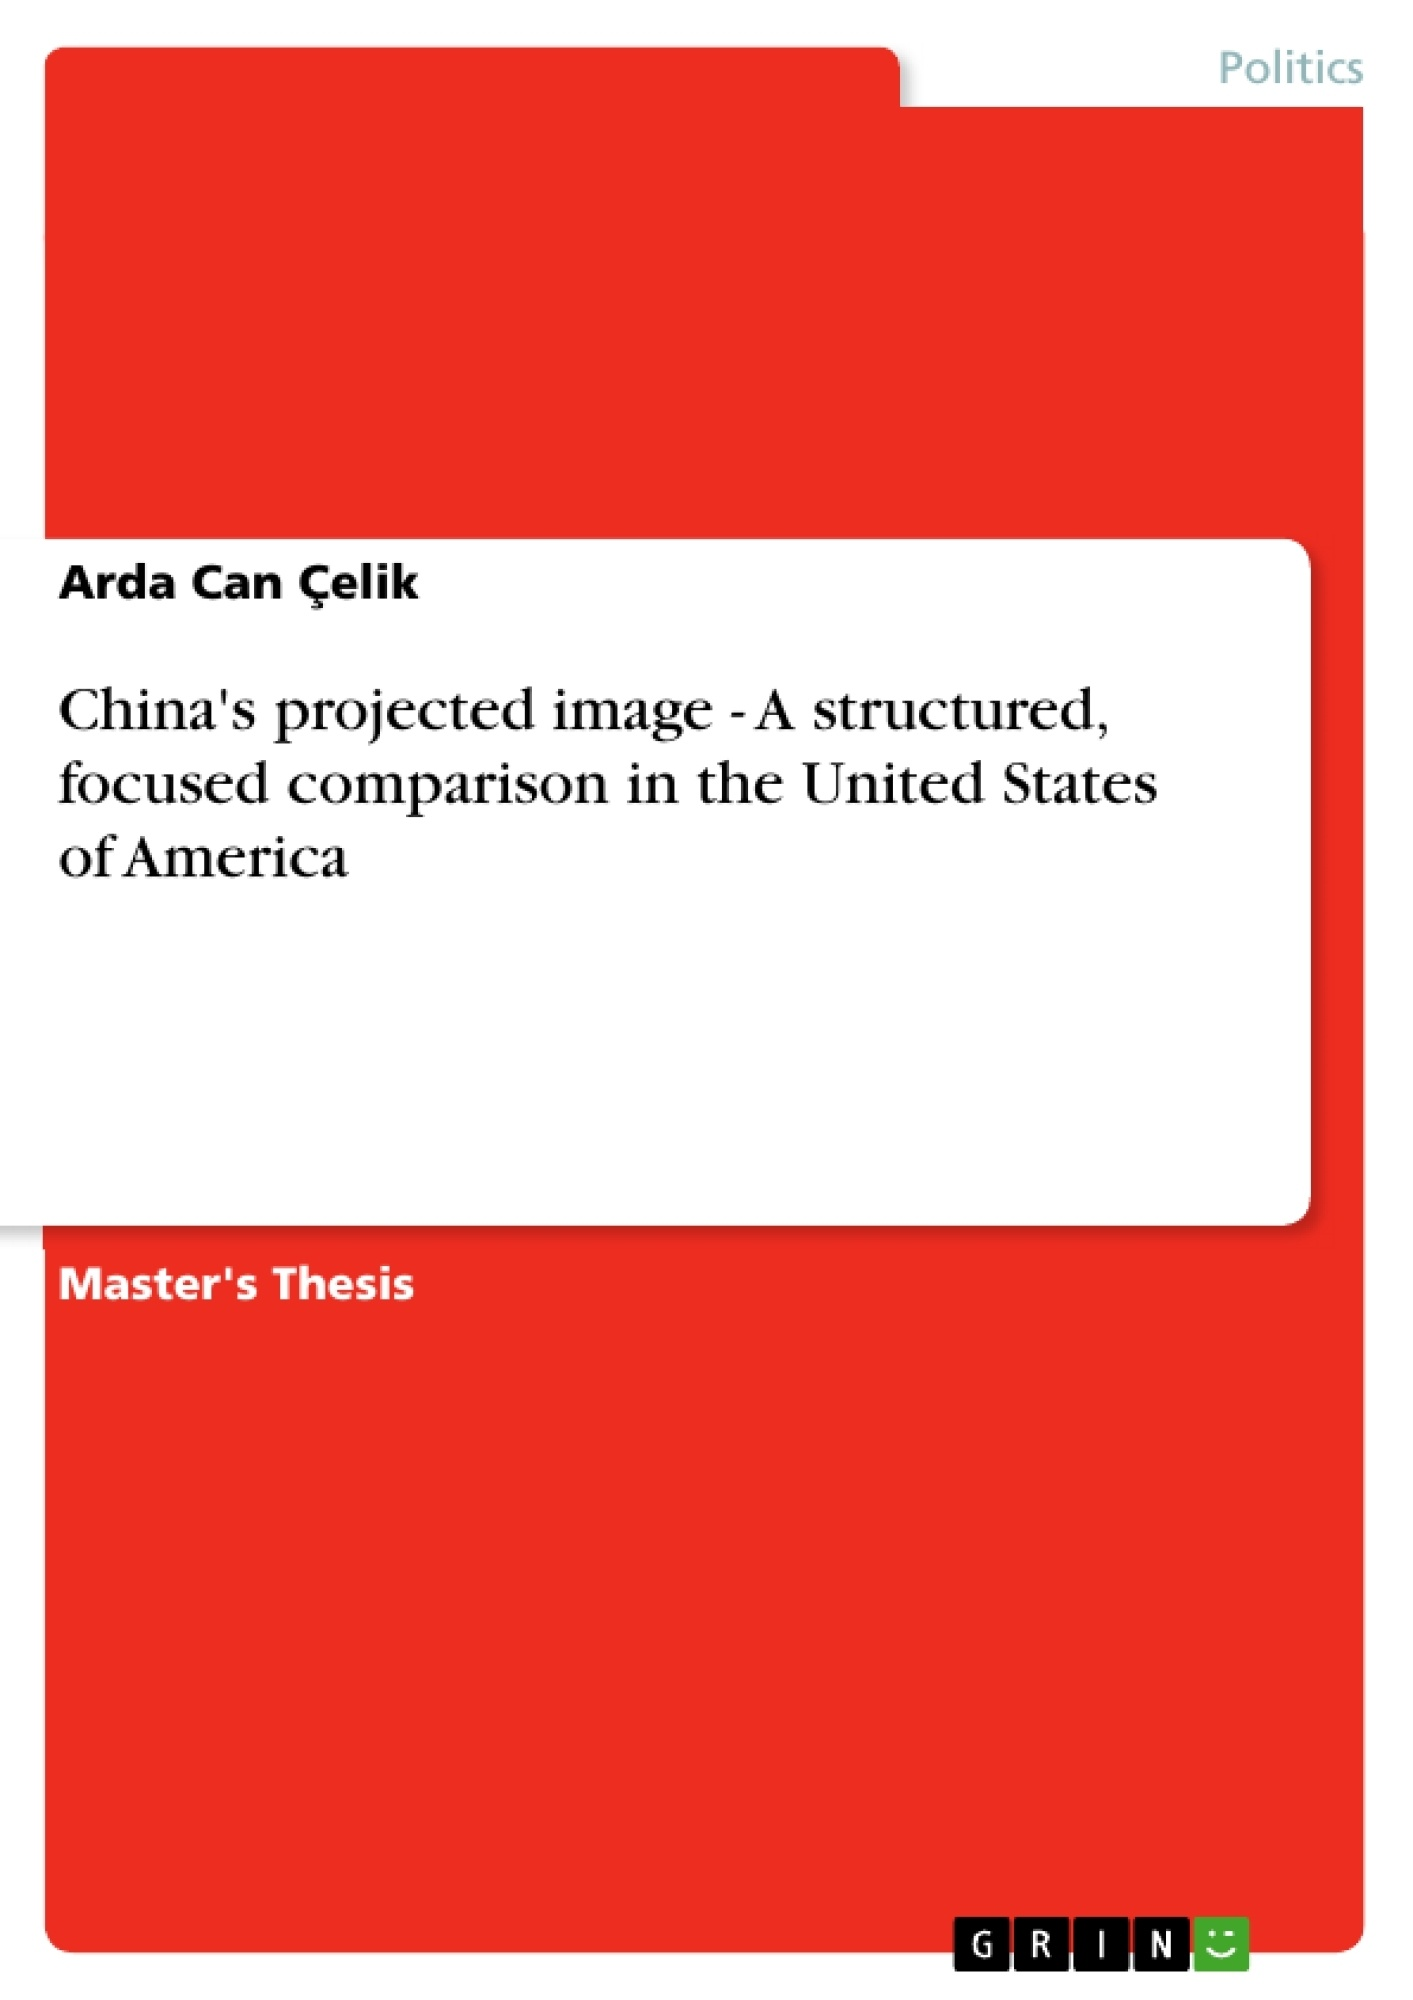 Title: China's projected image - A structured, focused comparison in the United States of America